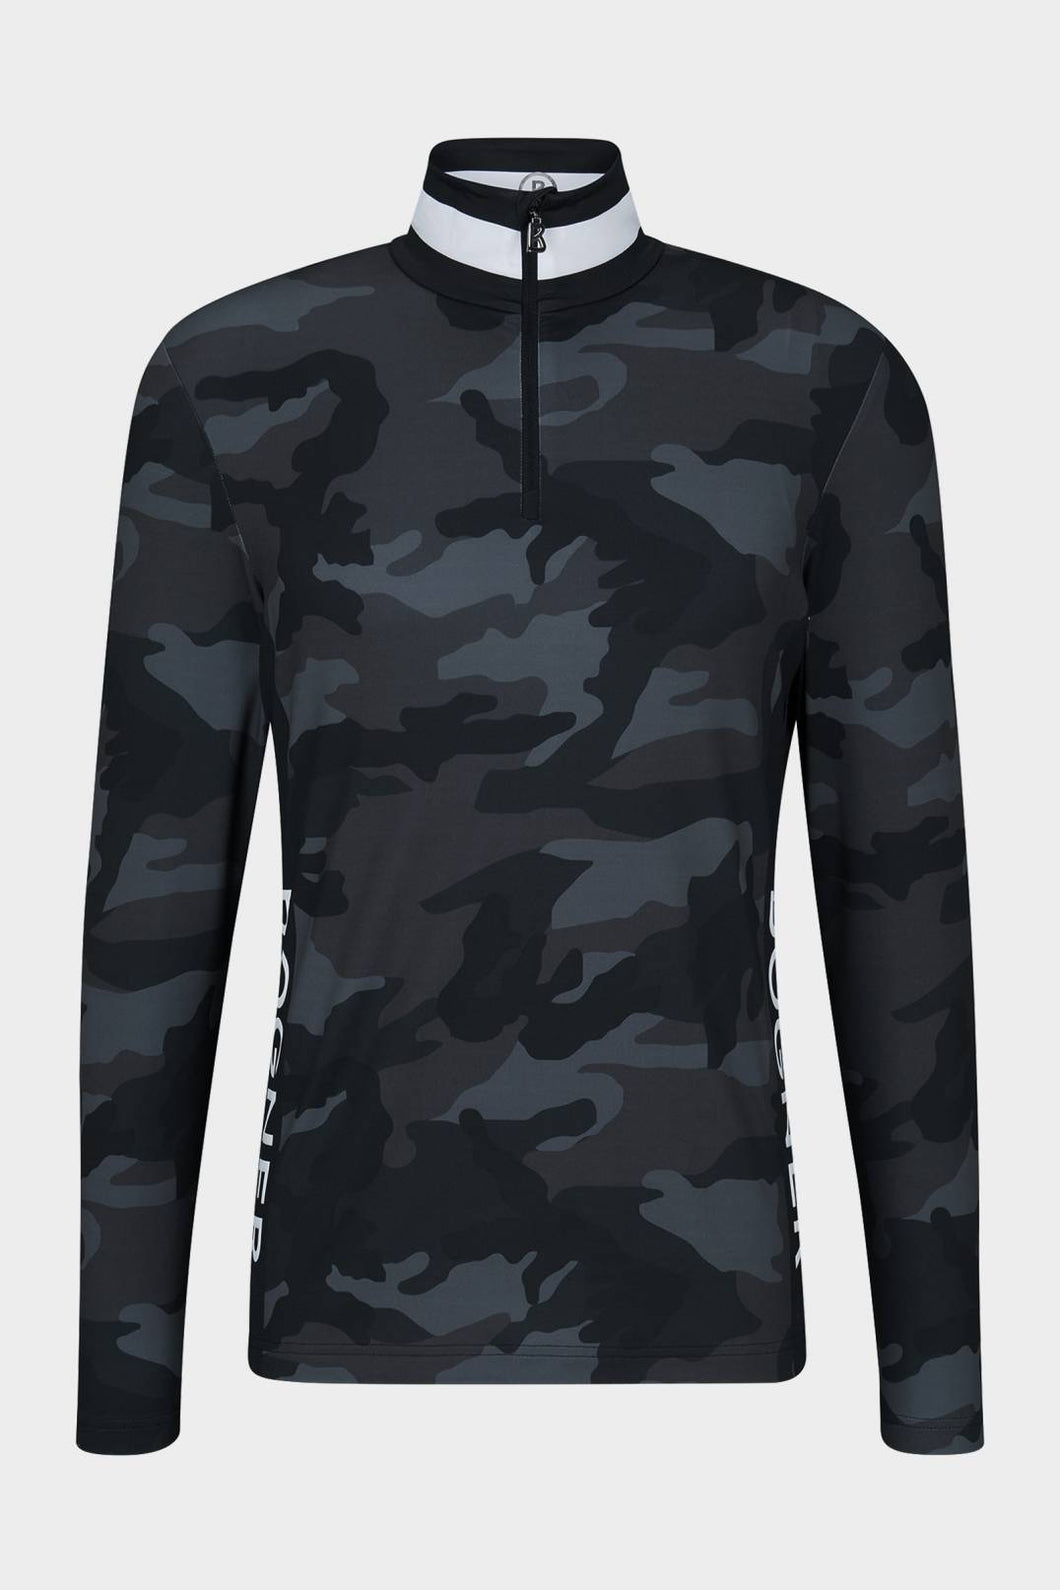 Verti Camo Print Top - black